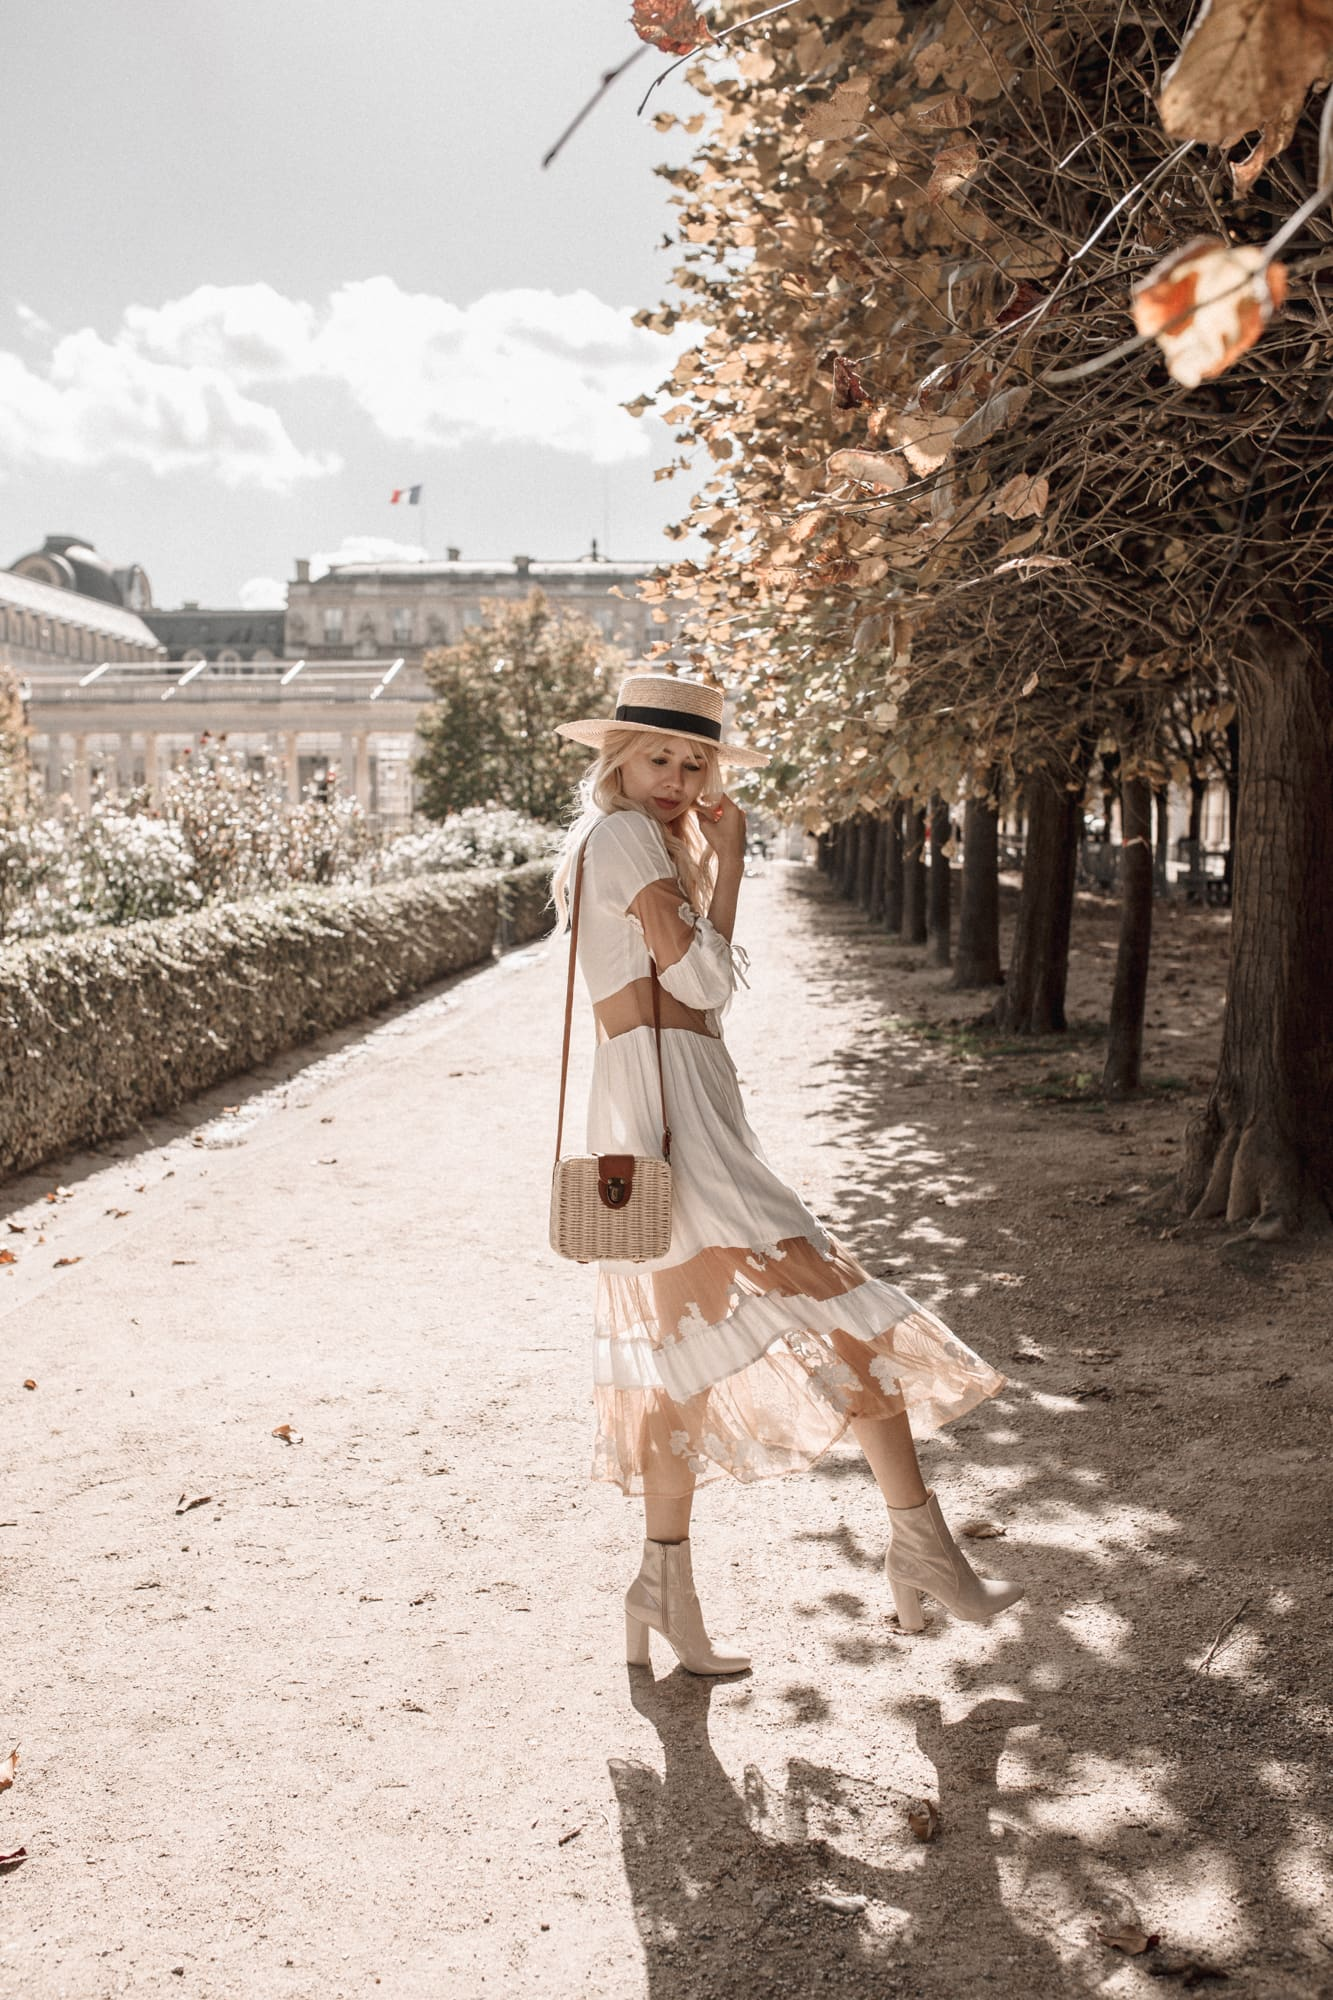 walking at Palais royal